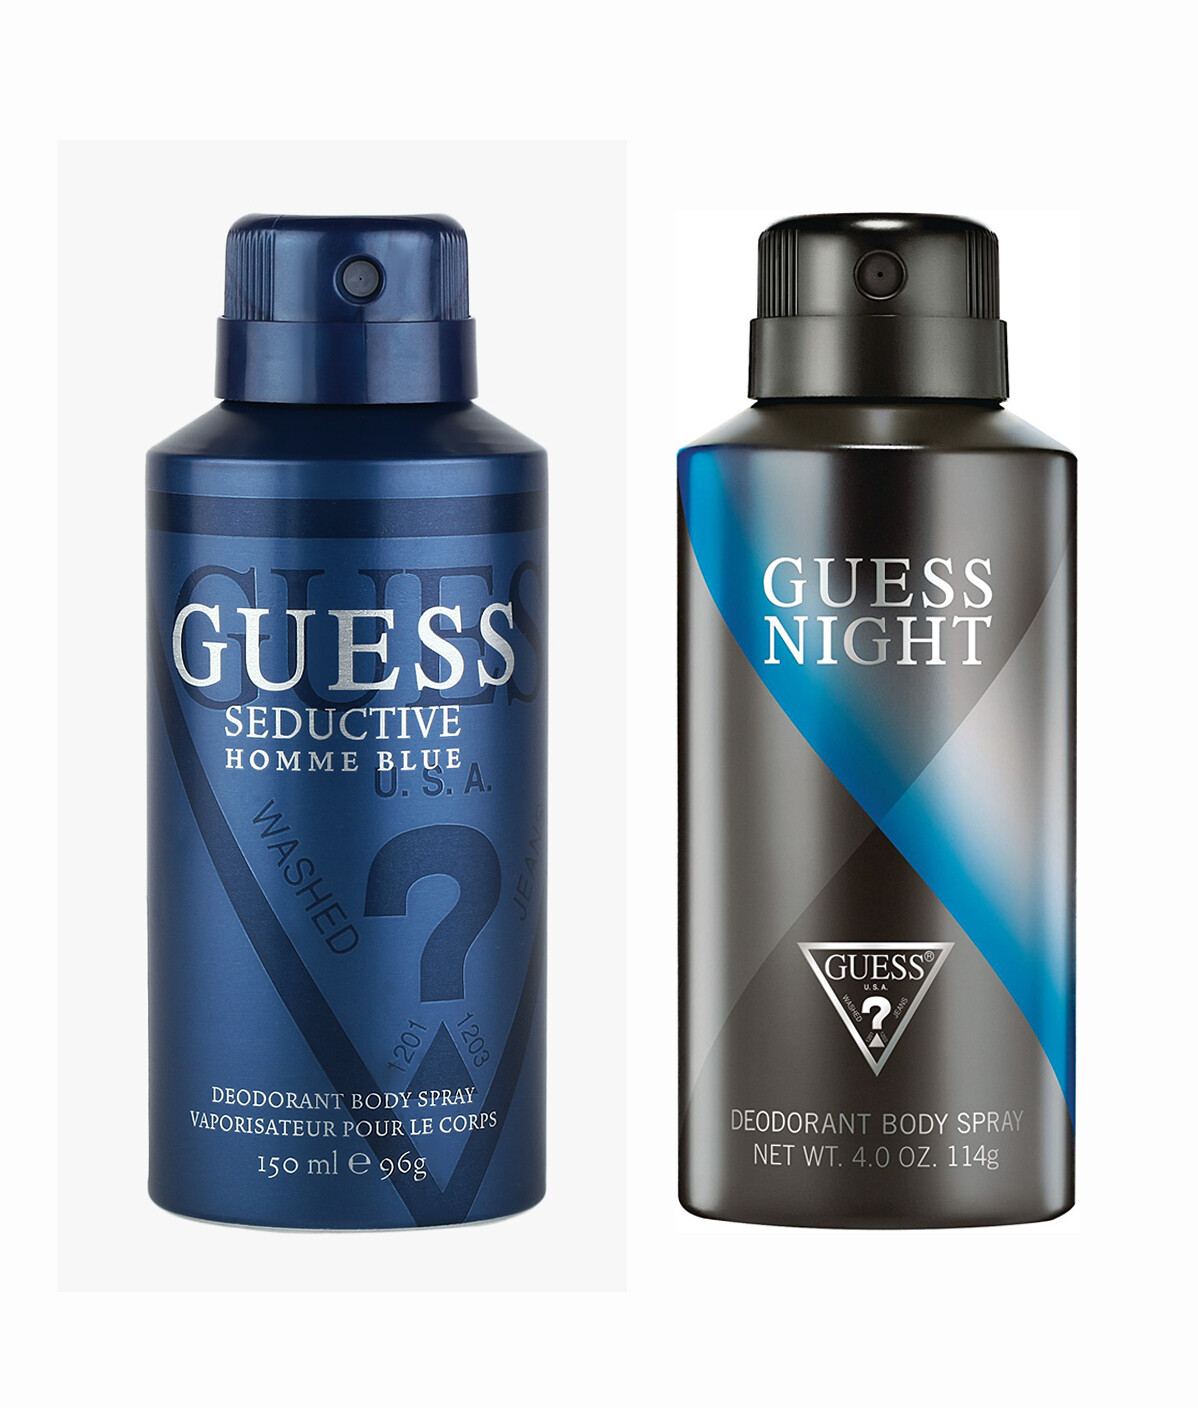 Guess Seductive Home Blue + Night Deo Combo Set - Pack of 2